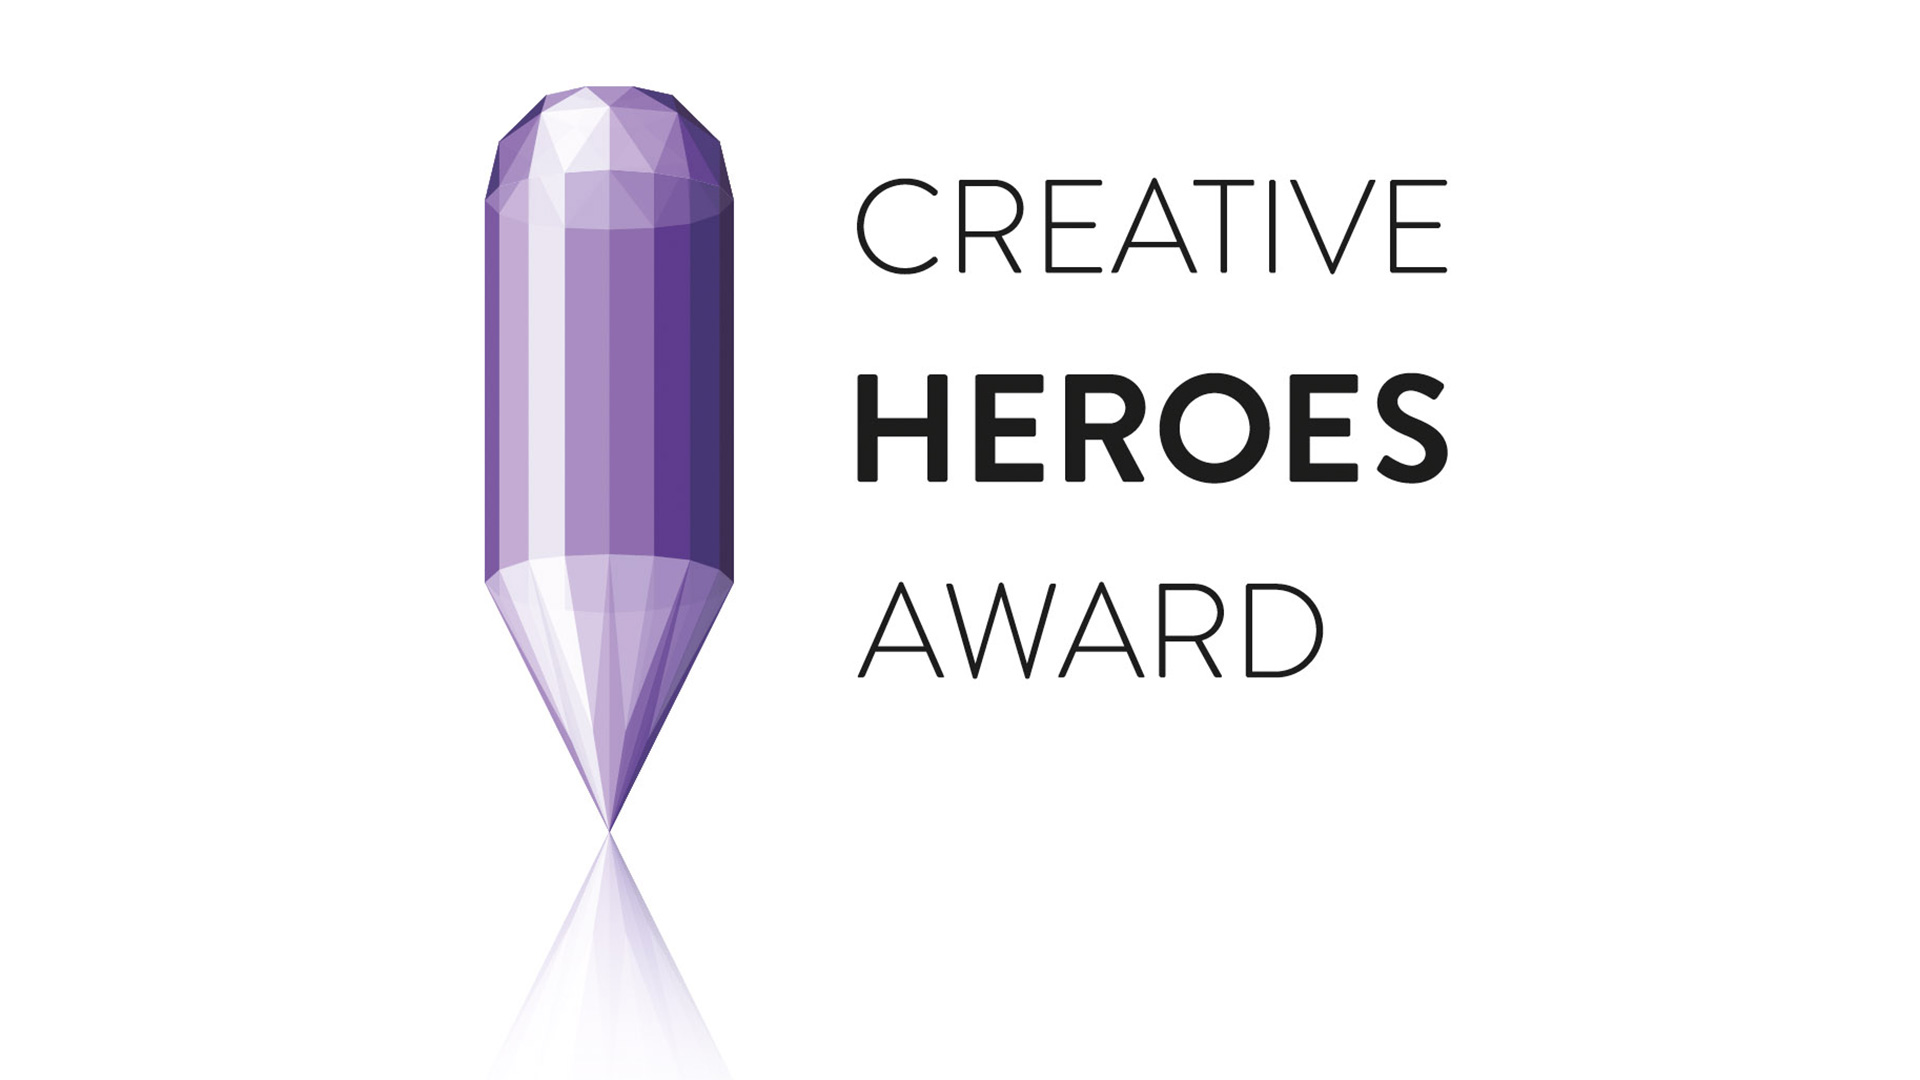 vijf genomineerden creative heroes award hero